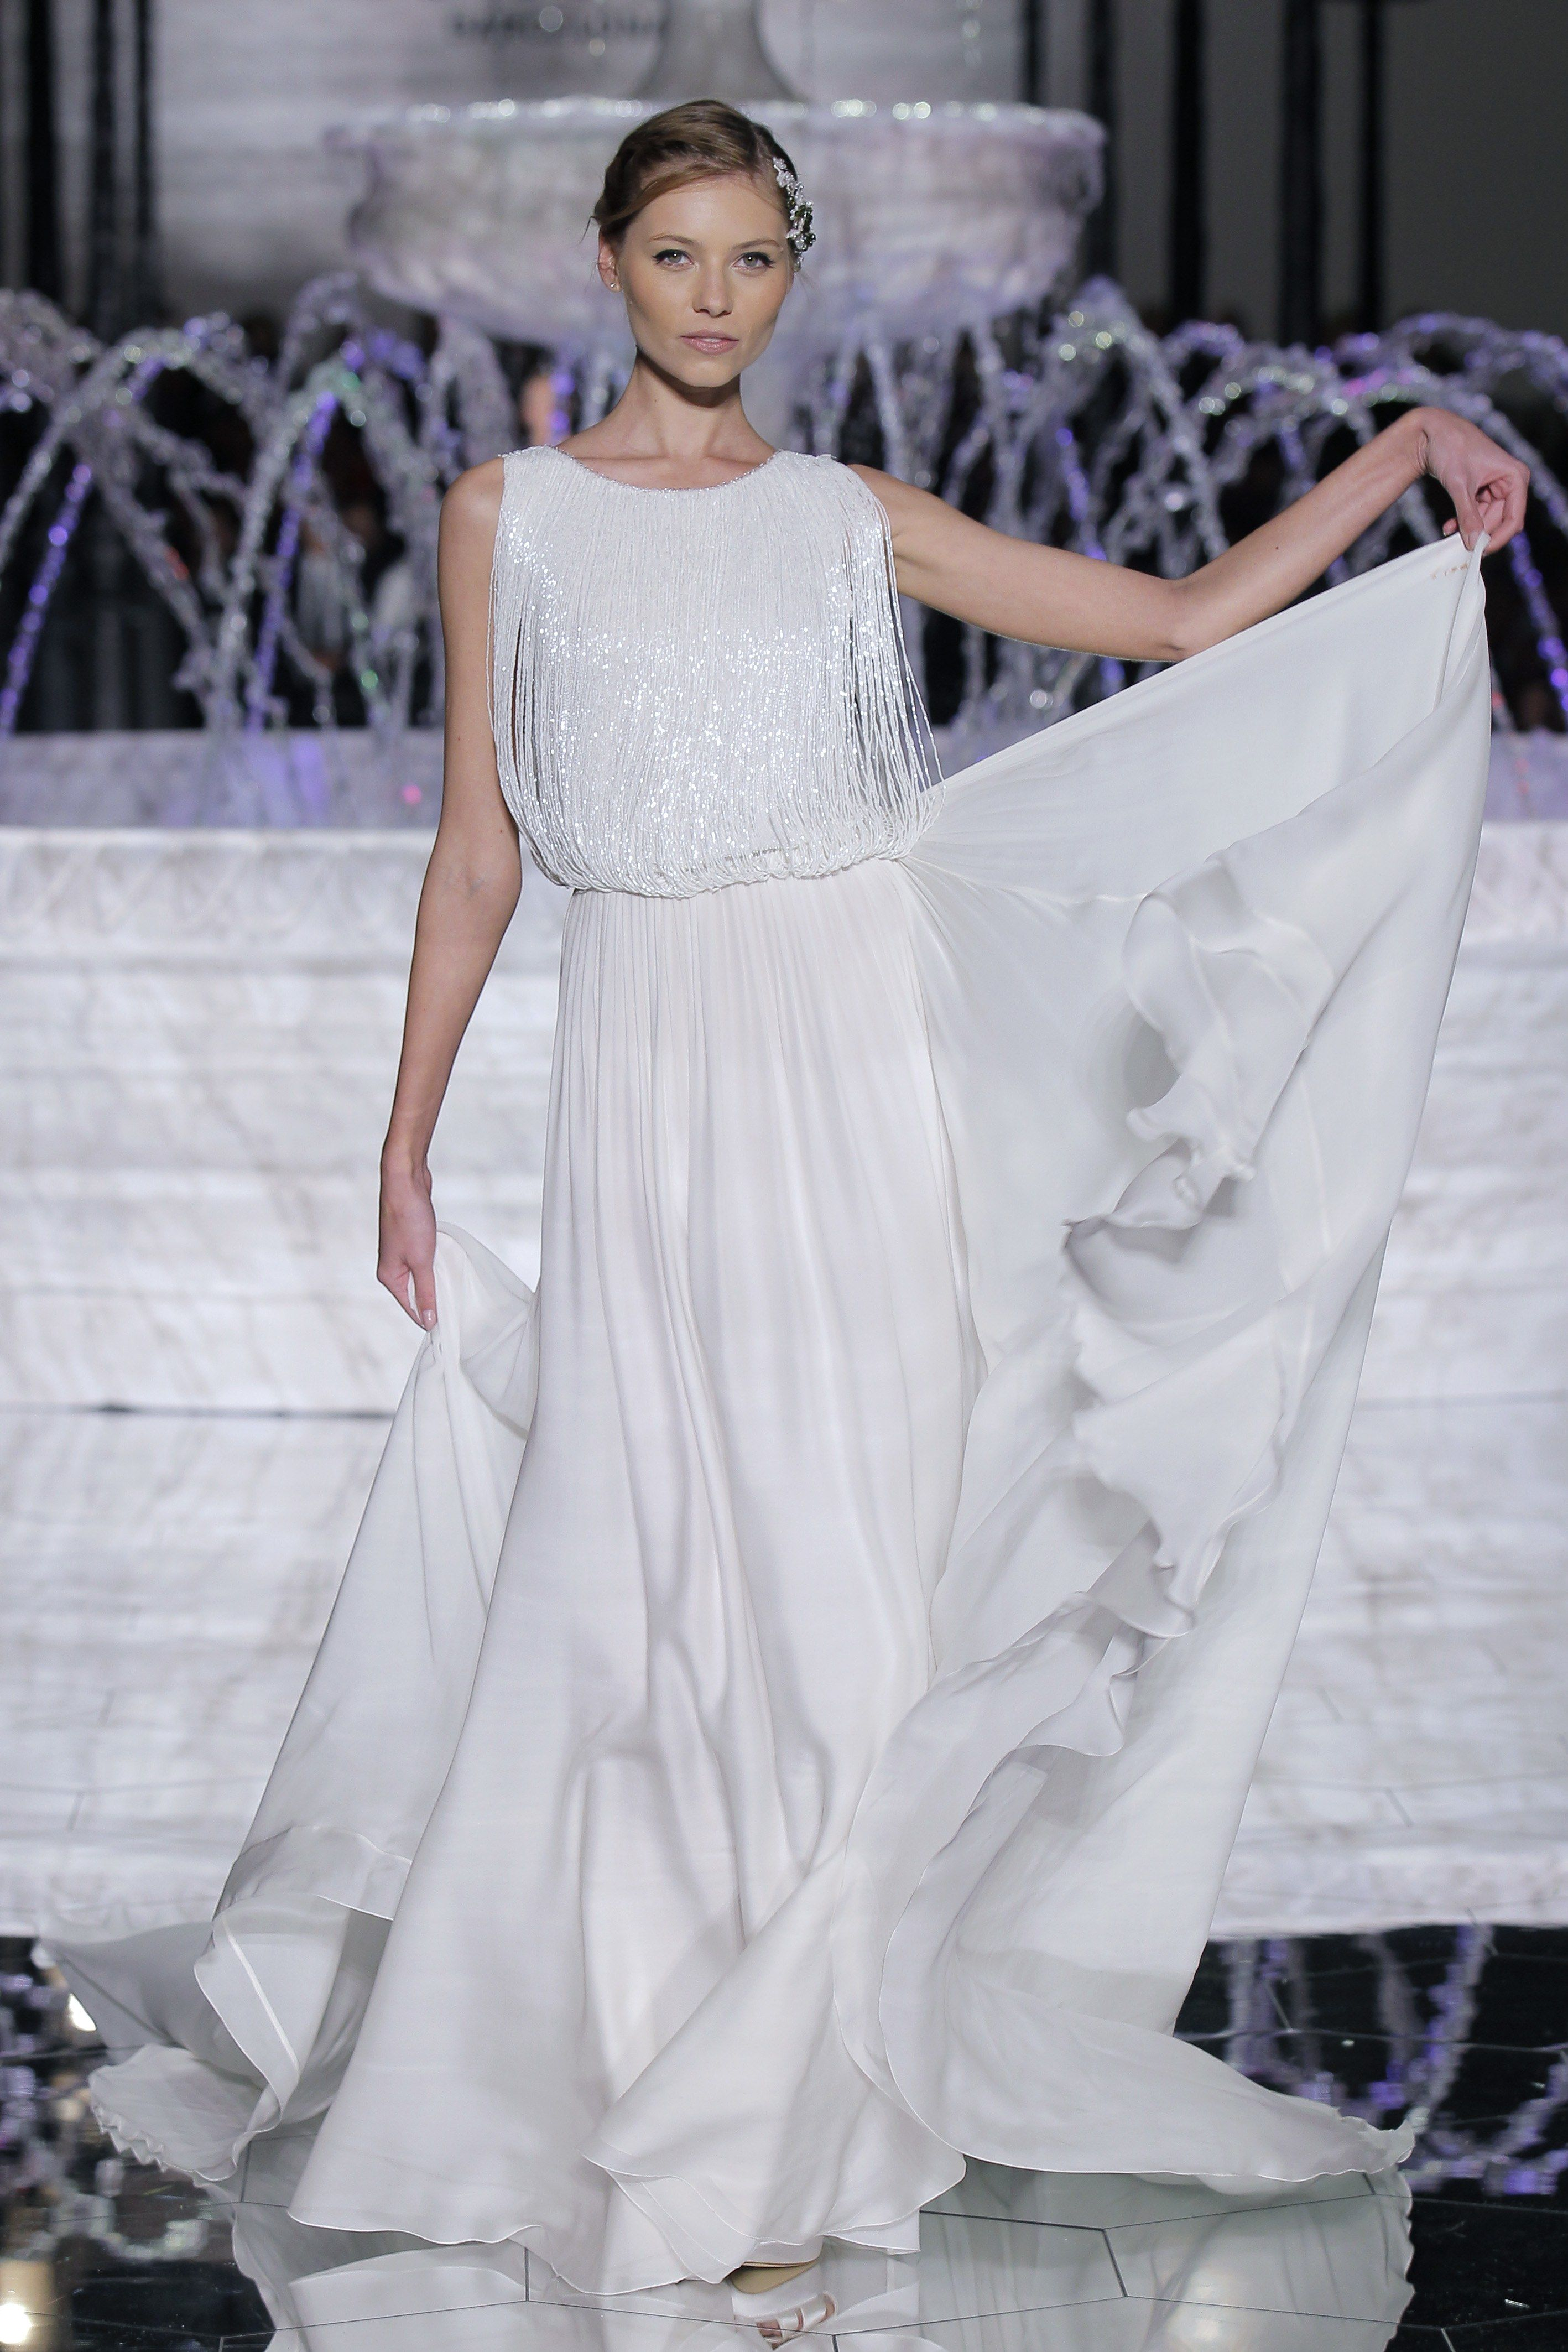 Great gatsby inspired wedding dresses   Roaring s Great Gatsby Inspired Wedding Dresses  Brides